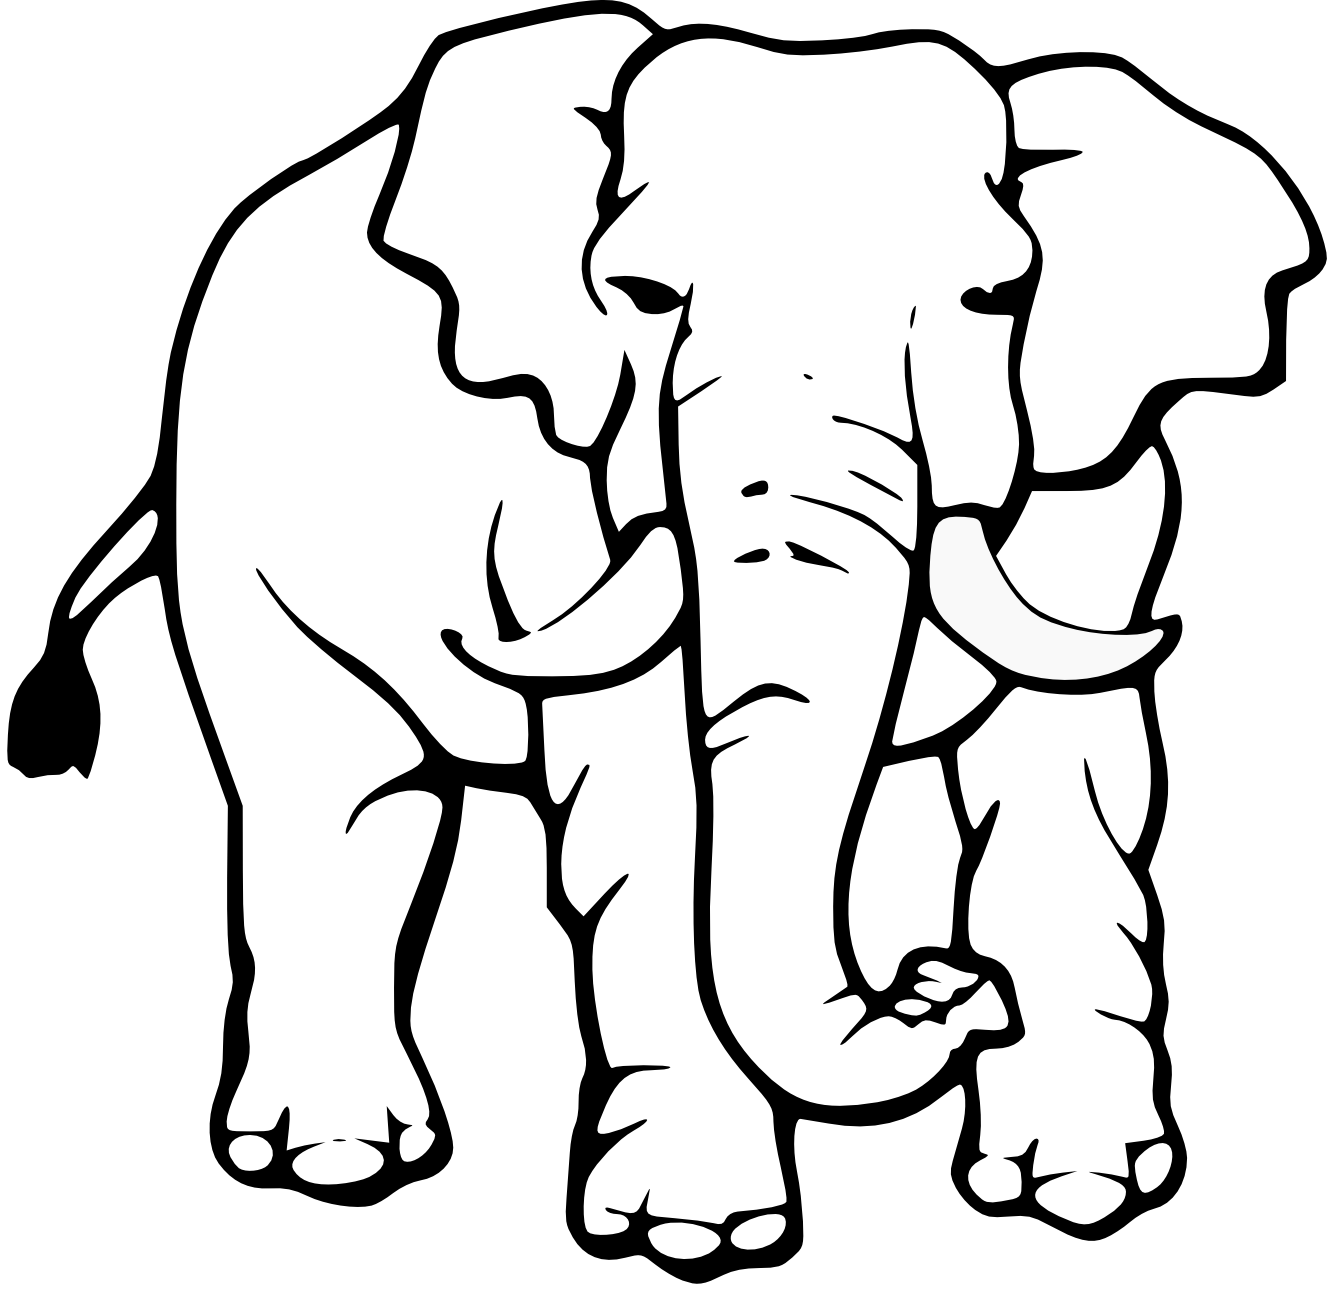 Best Cute Elephant Clipart Black and White #28163 ...